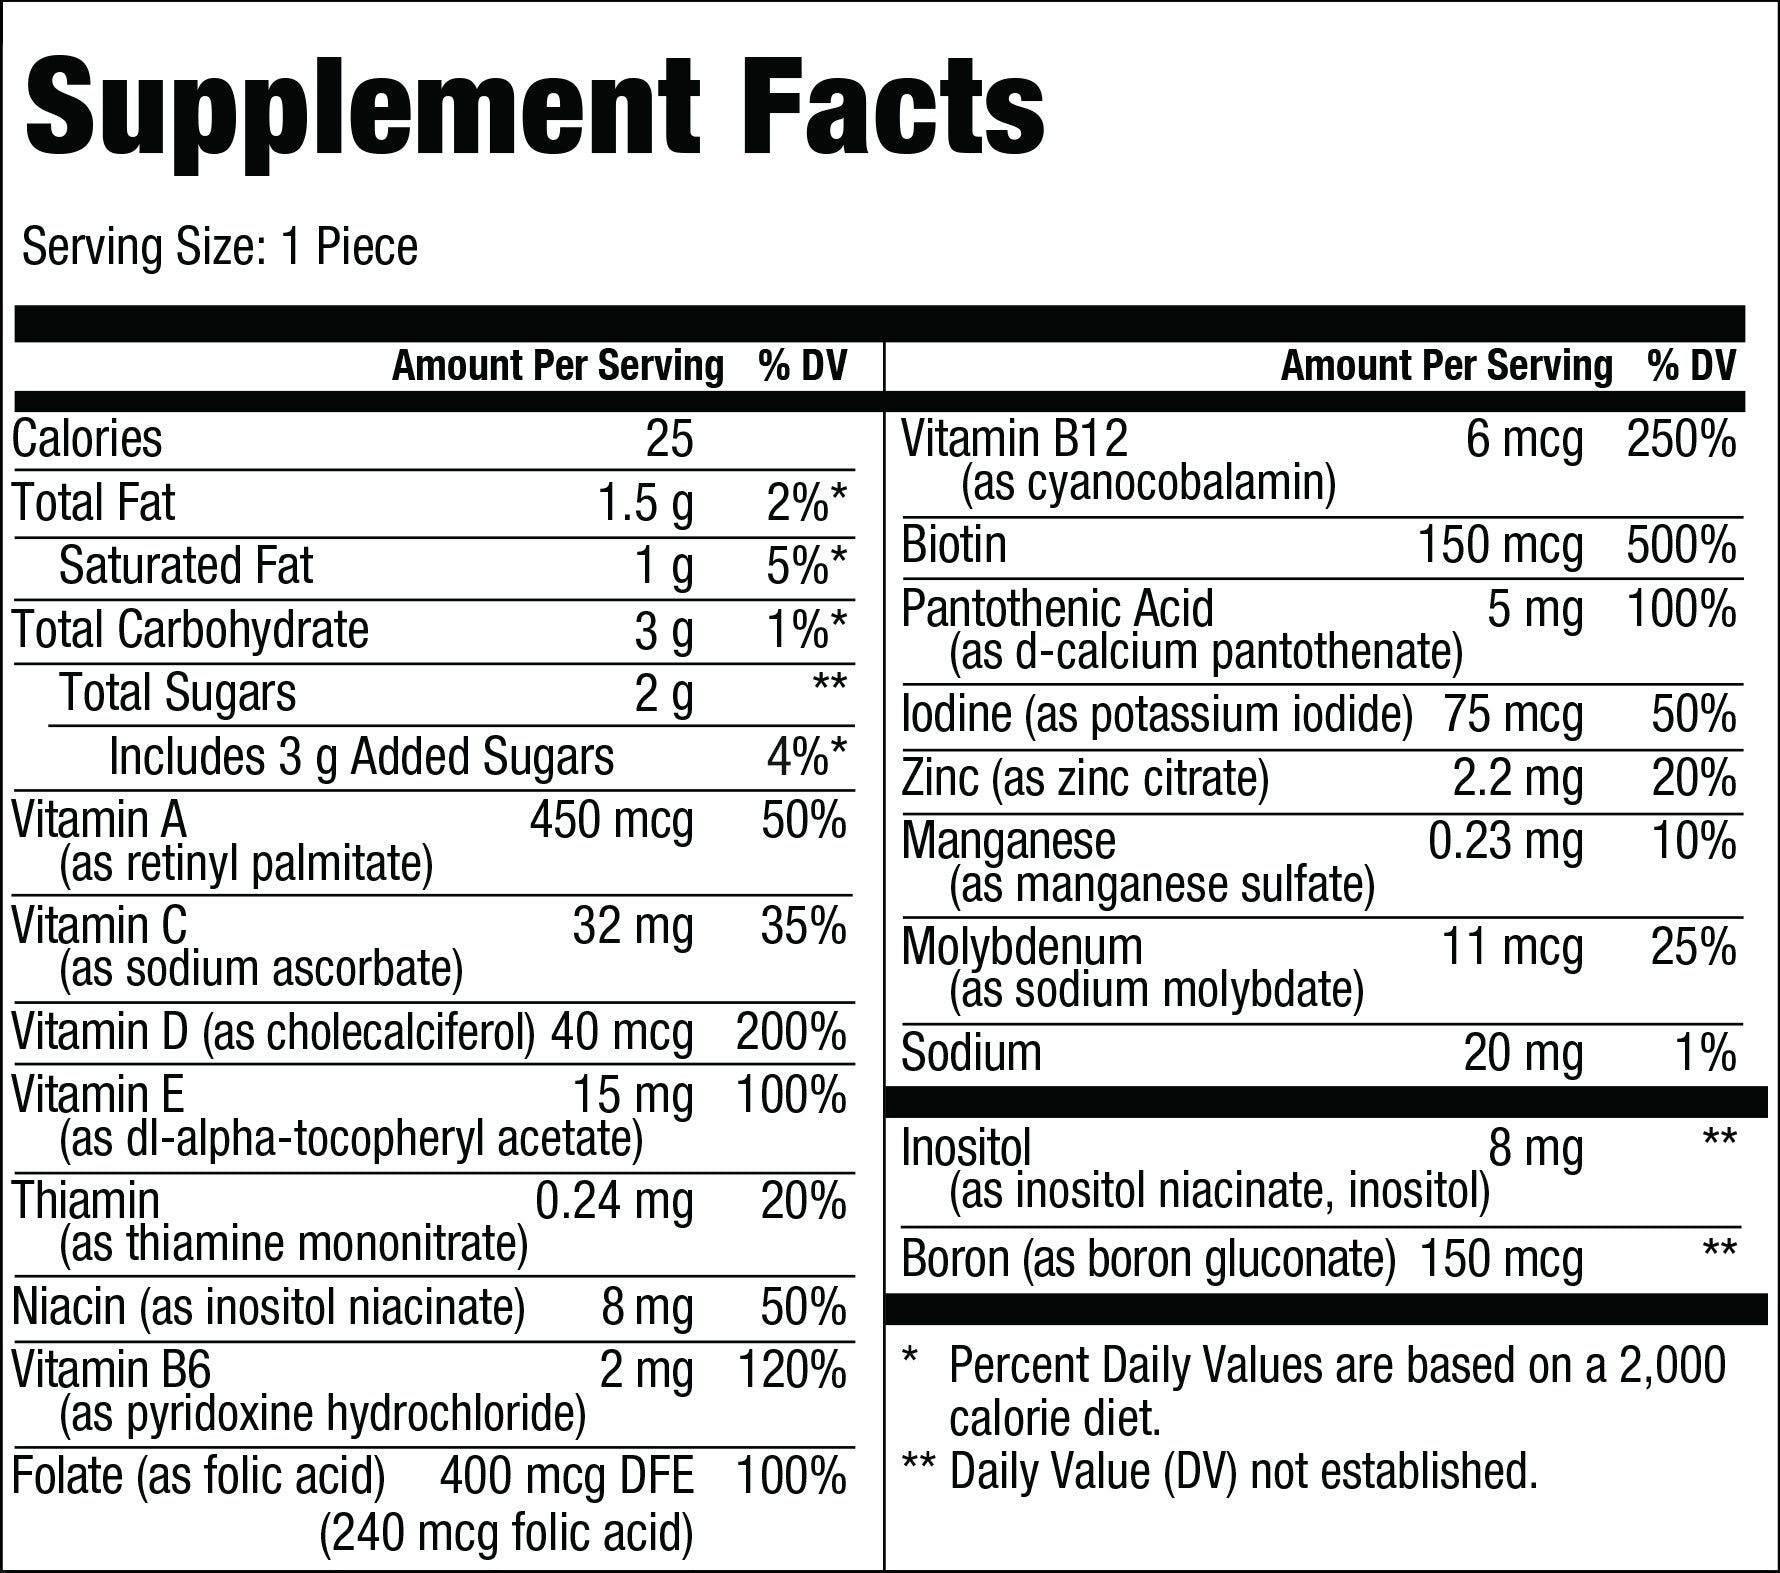 Hers Supplement Facts